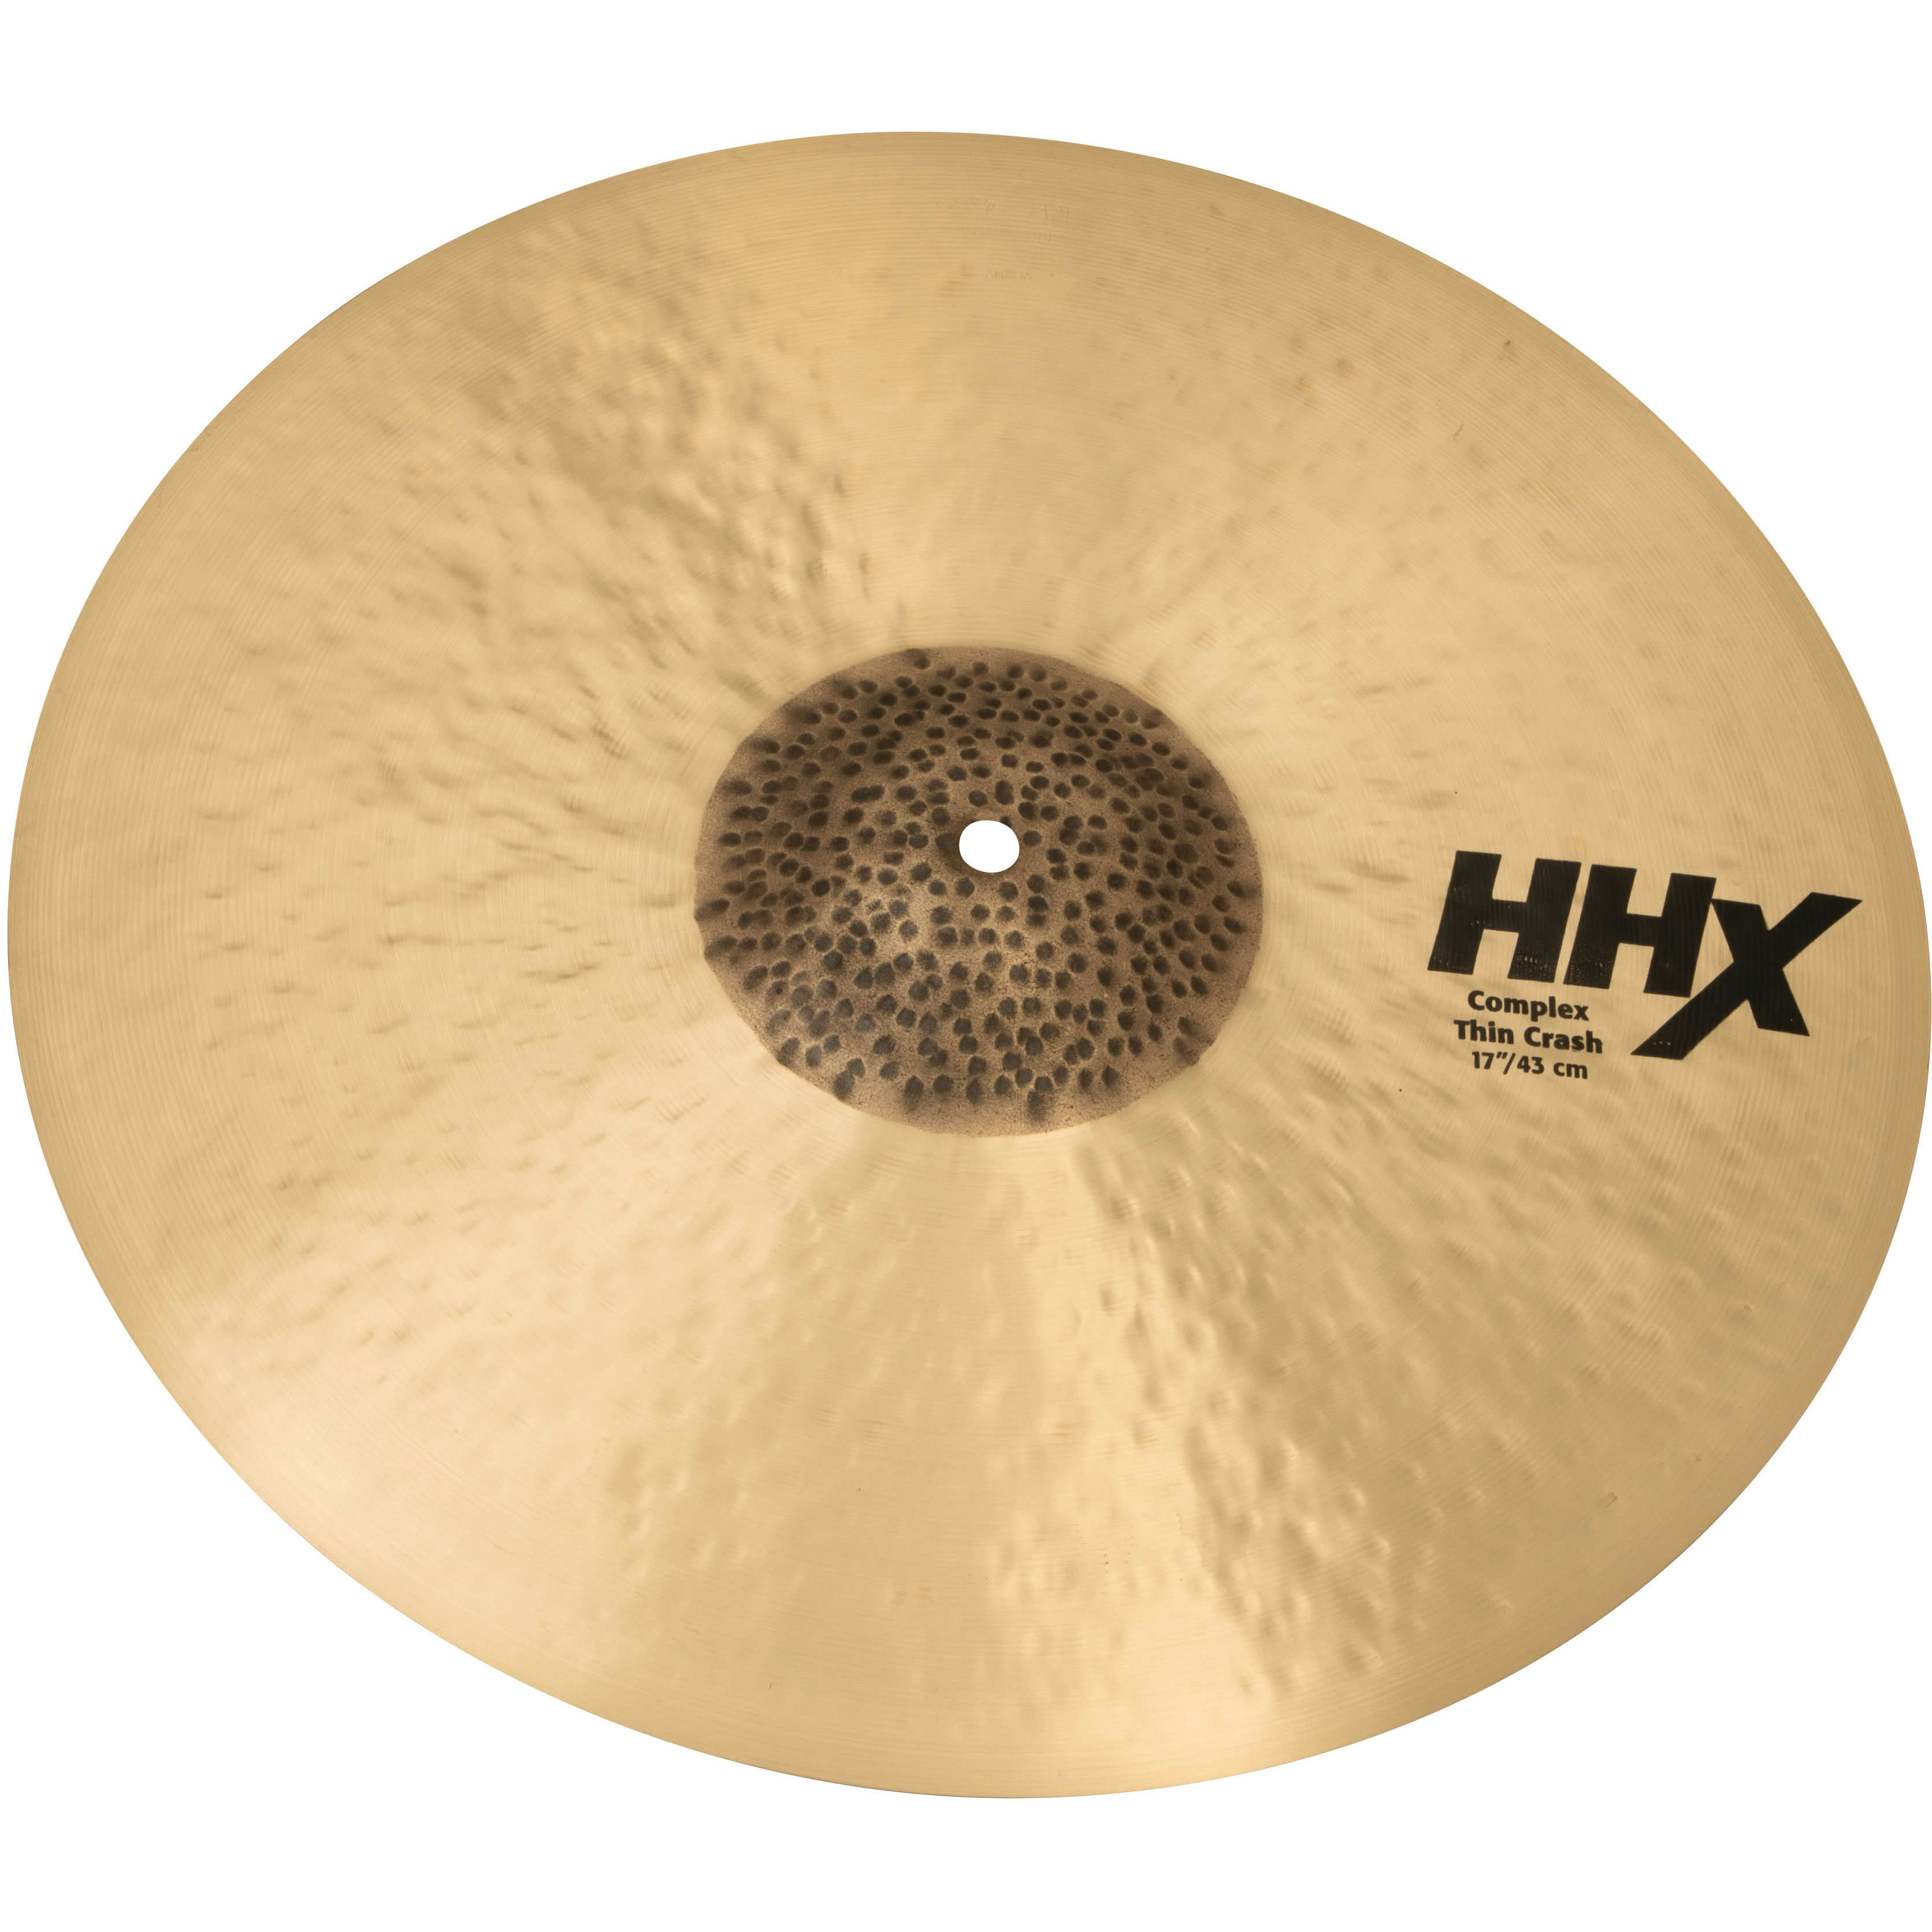 "Sabian 17"" HHX Complex Thin Crash Cymbal"